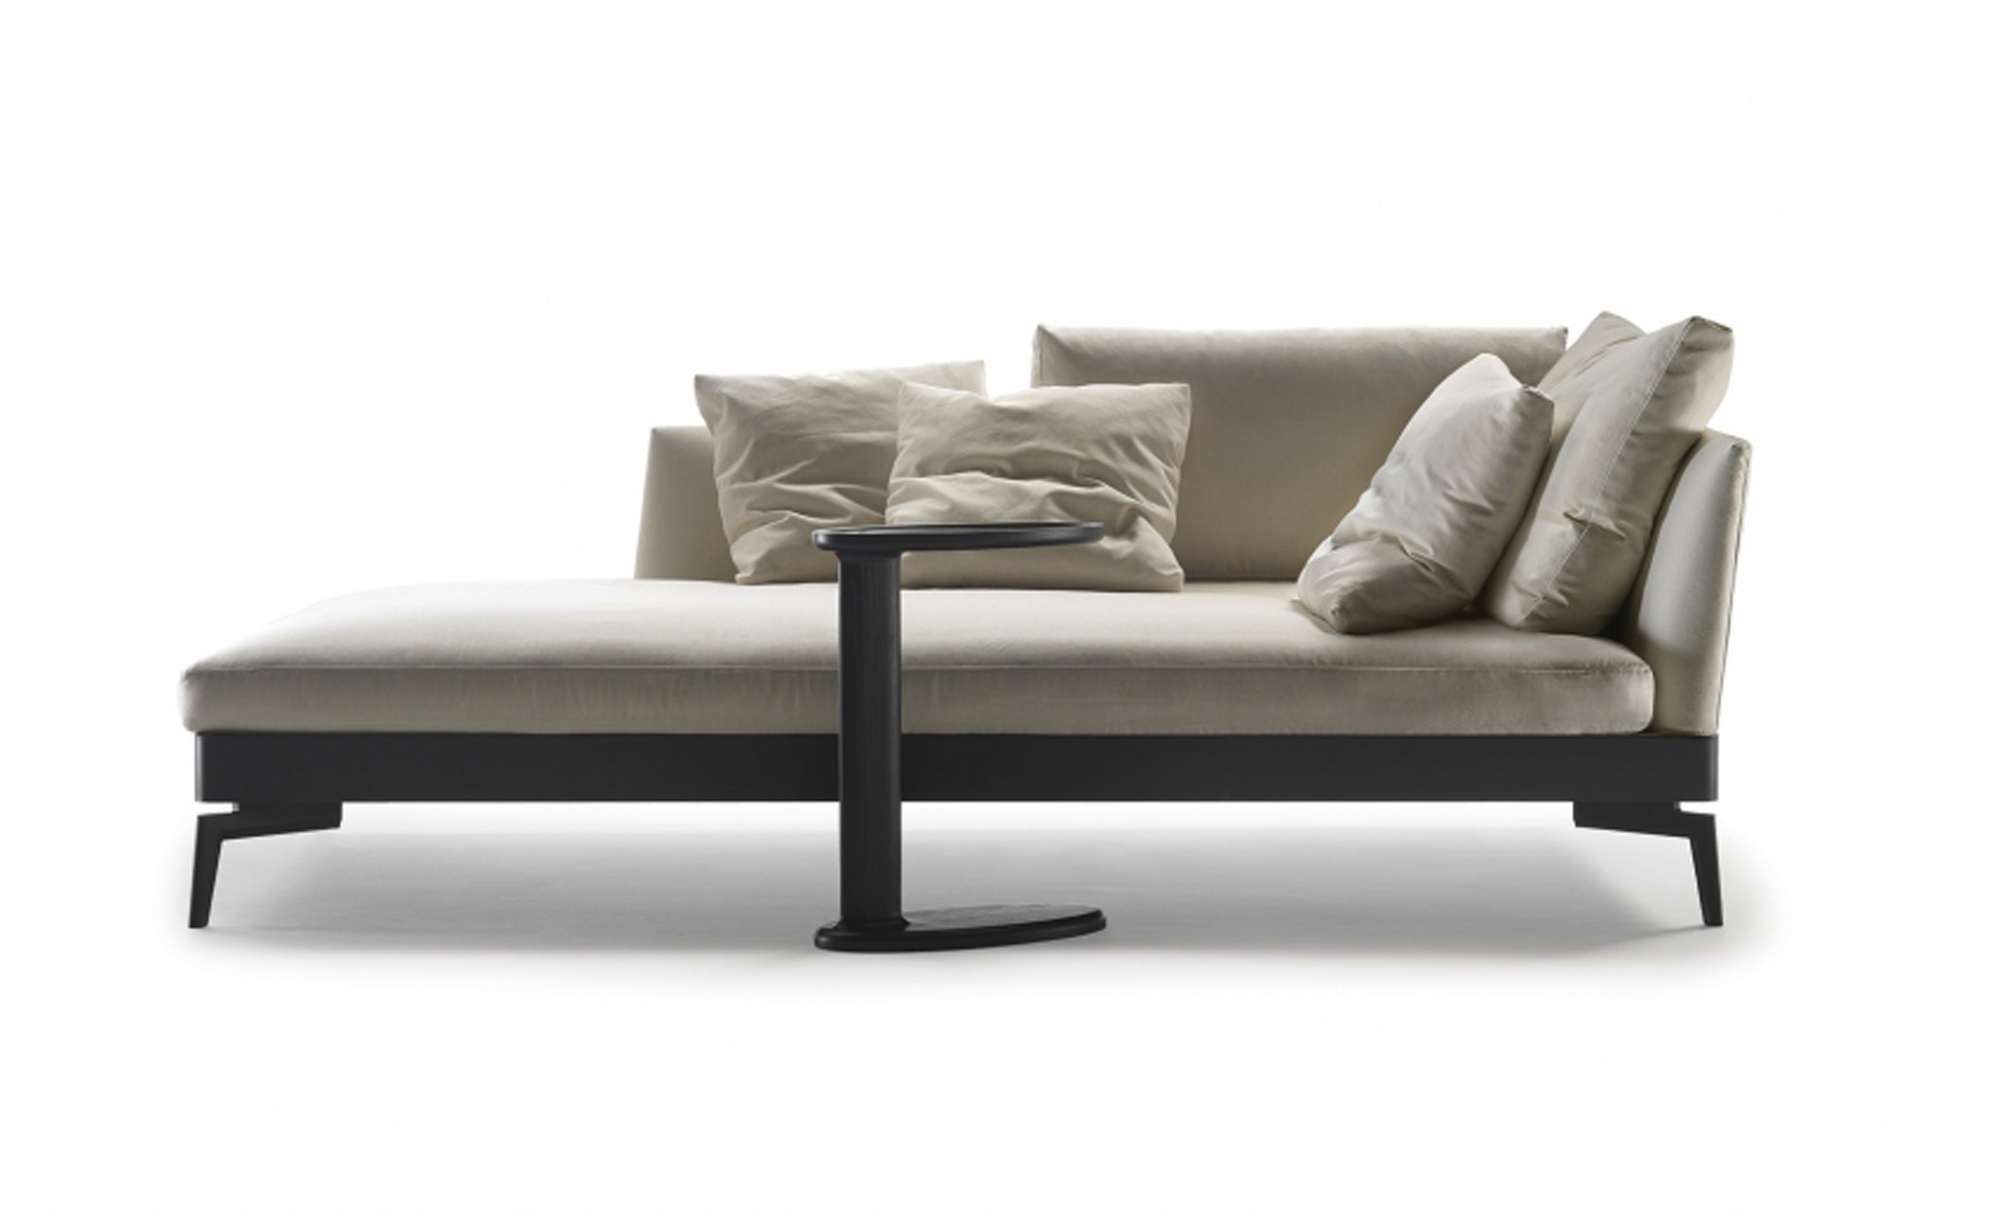 Feelgood Sofabeds And Chaises Fanuli Furniture